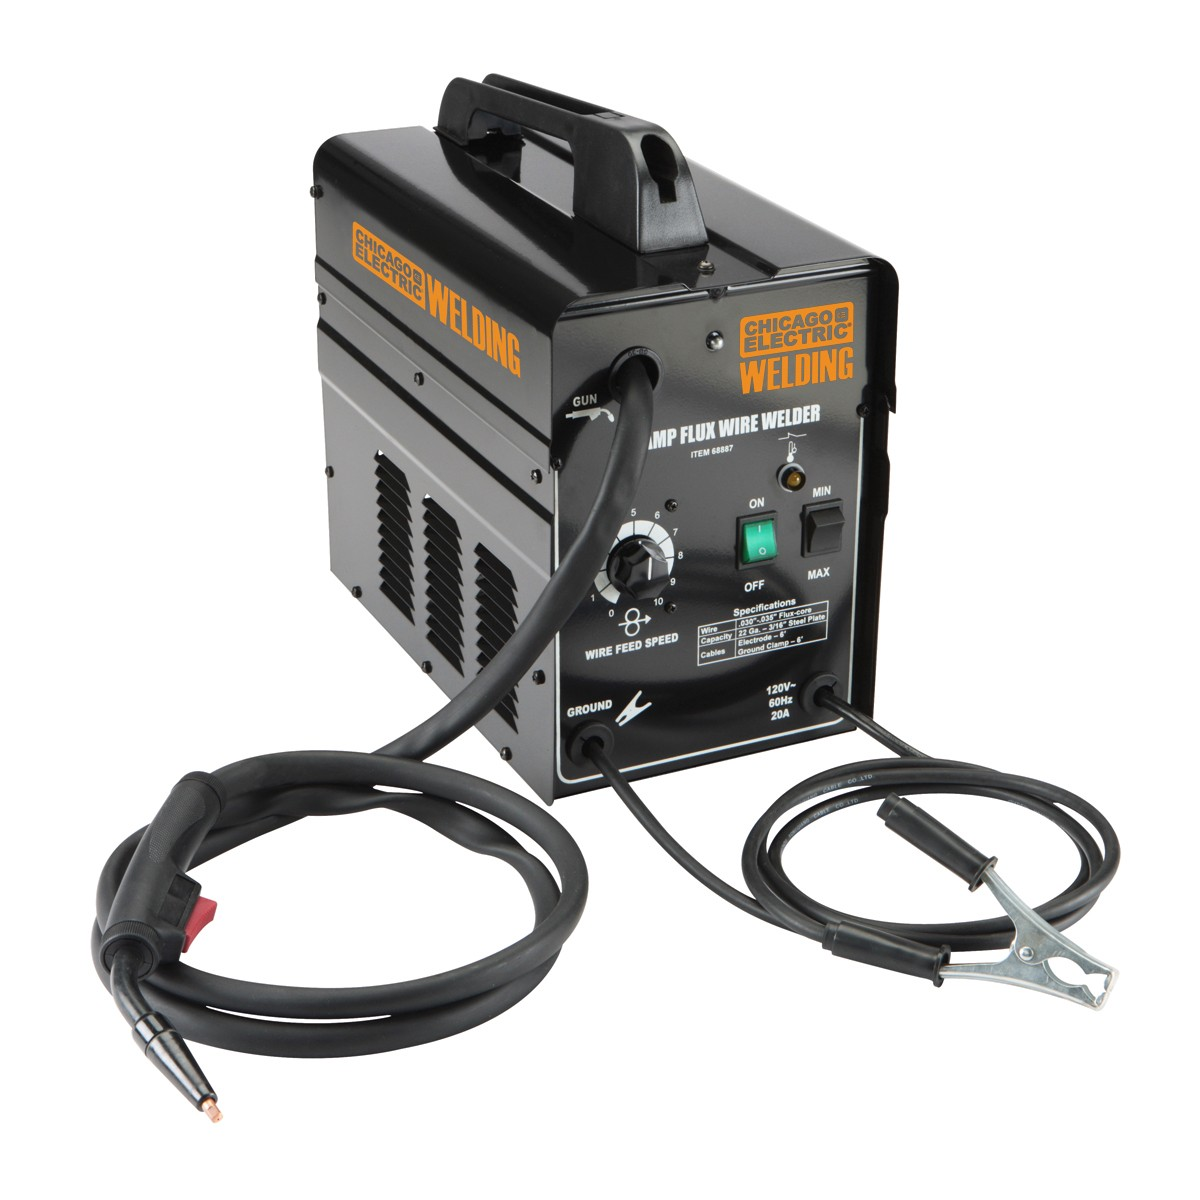 lincoln electric welder wiring diagram 2003 jetta monsoon chicago welding systems 90 amp flux wire review - bros